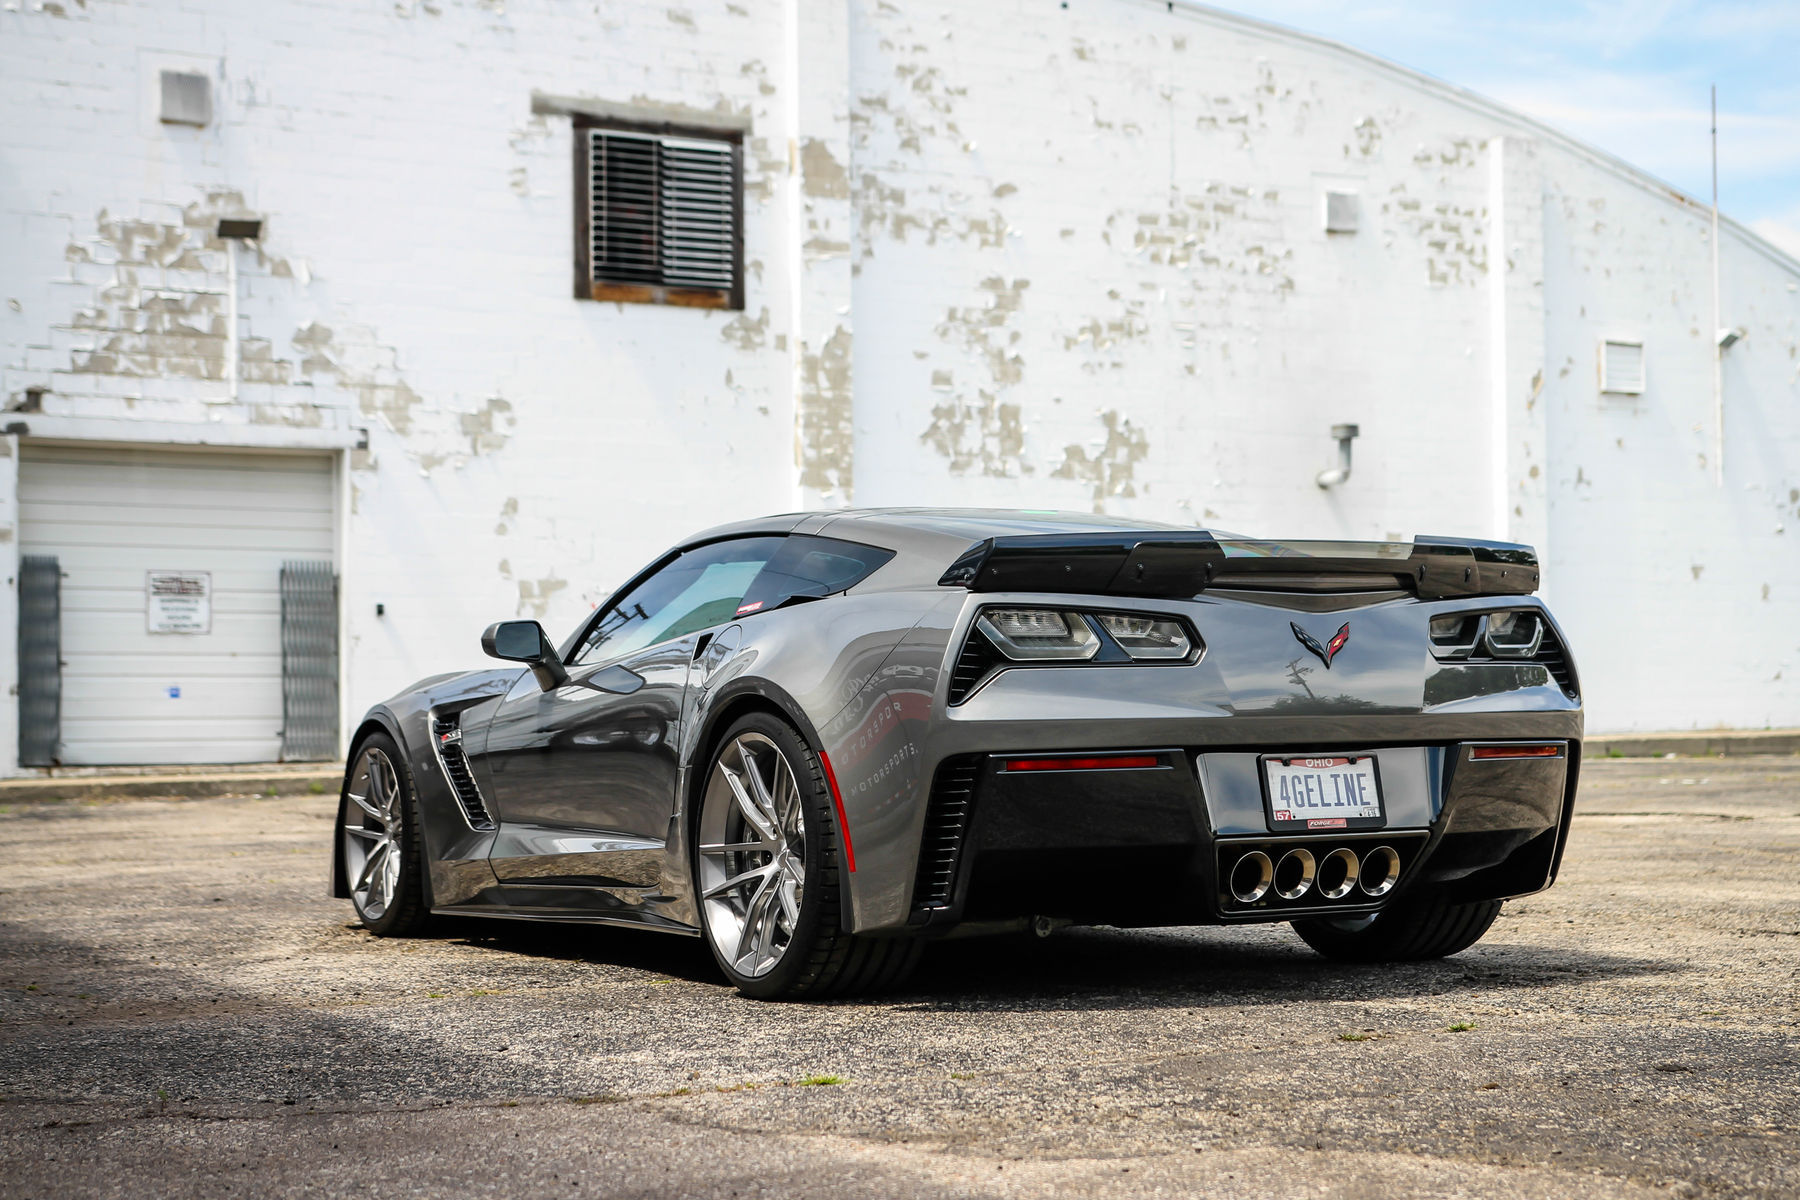 2015 Chevrolet Corvette Z06 | Forgeline C7 Corvette Z06 on AR1 Wheels